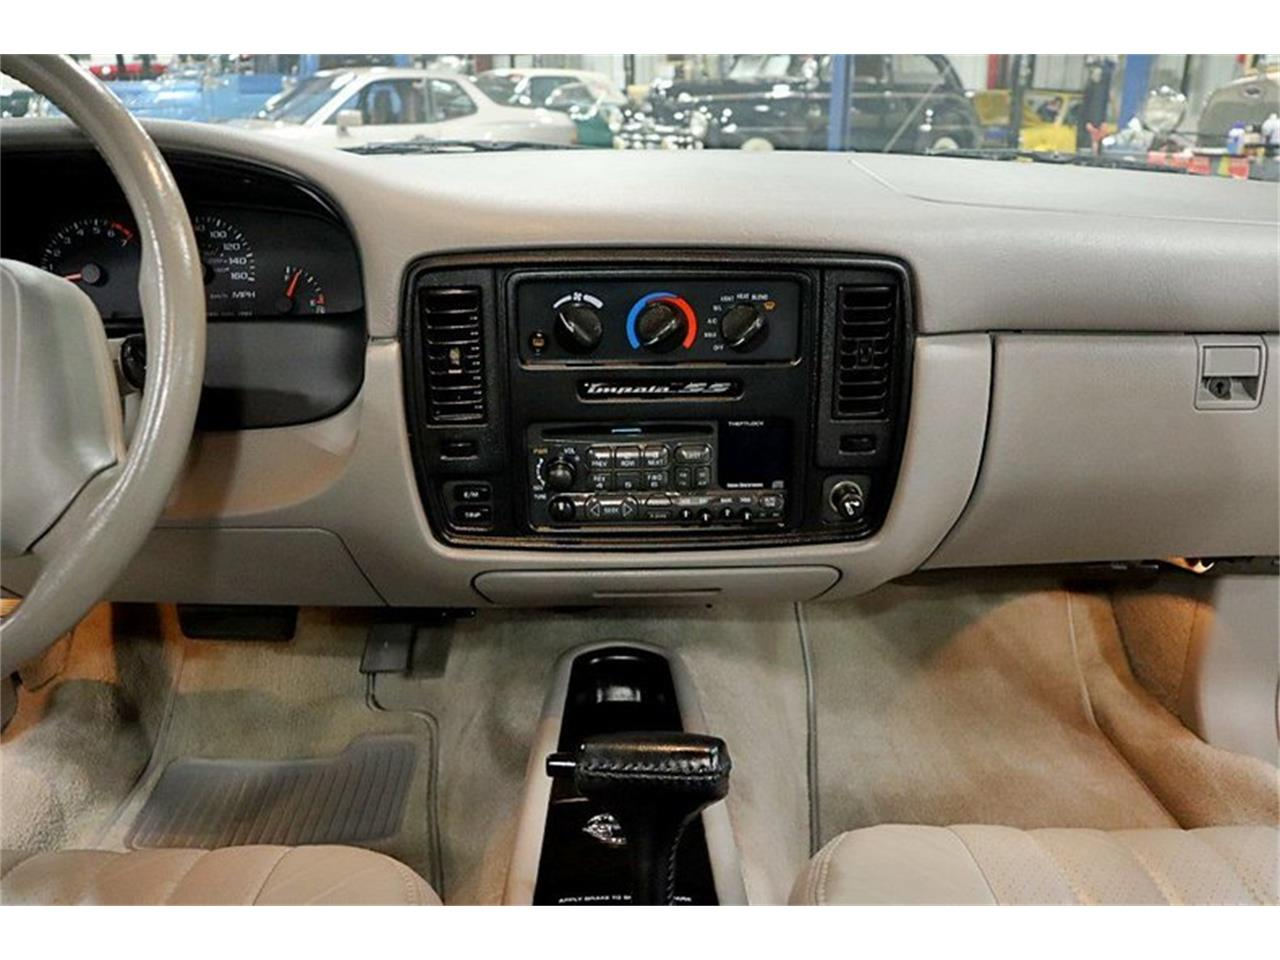 Large Picture of 1996 Chevrolet Impala located in Kentwood Michigan Offered by GR Auto Gallery - QV81